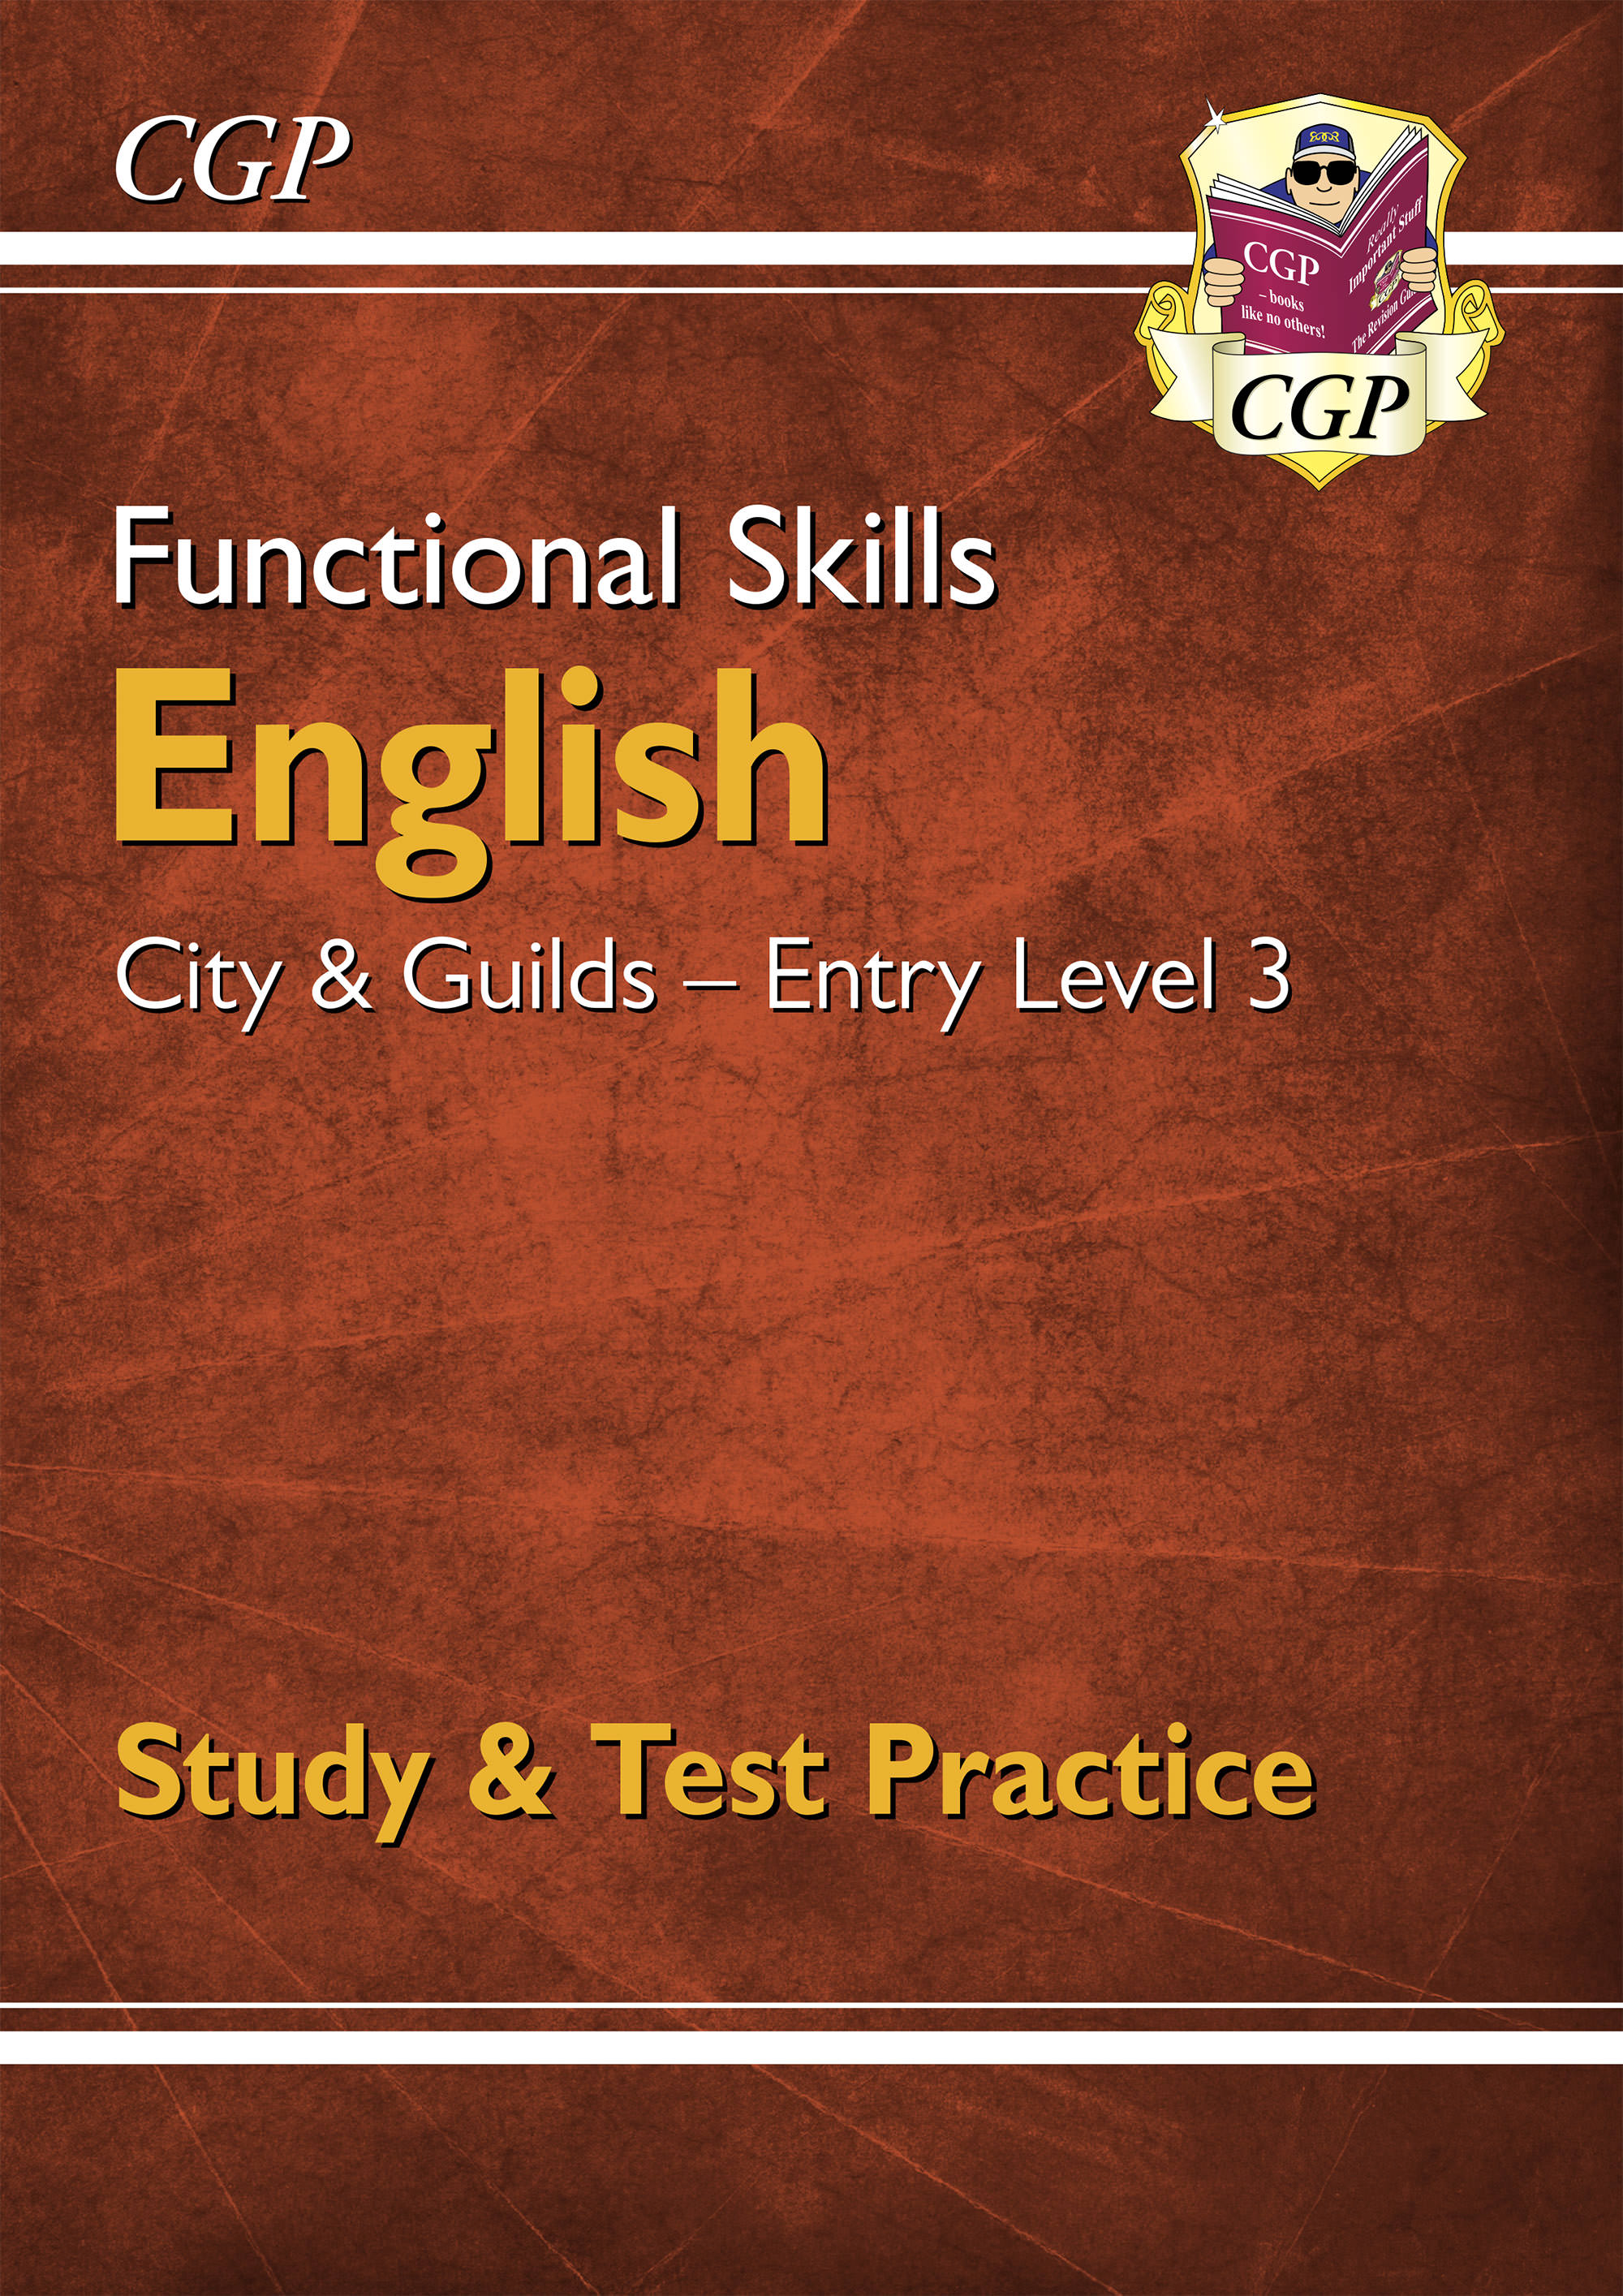 E3CGSRA1D - New Functional Skills English: City & Guilds Entry Level 3 - Study & Test Practice for 2